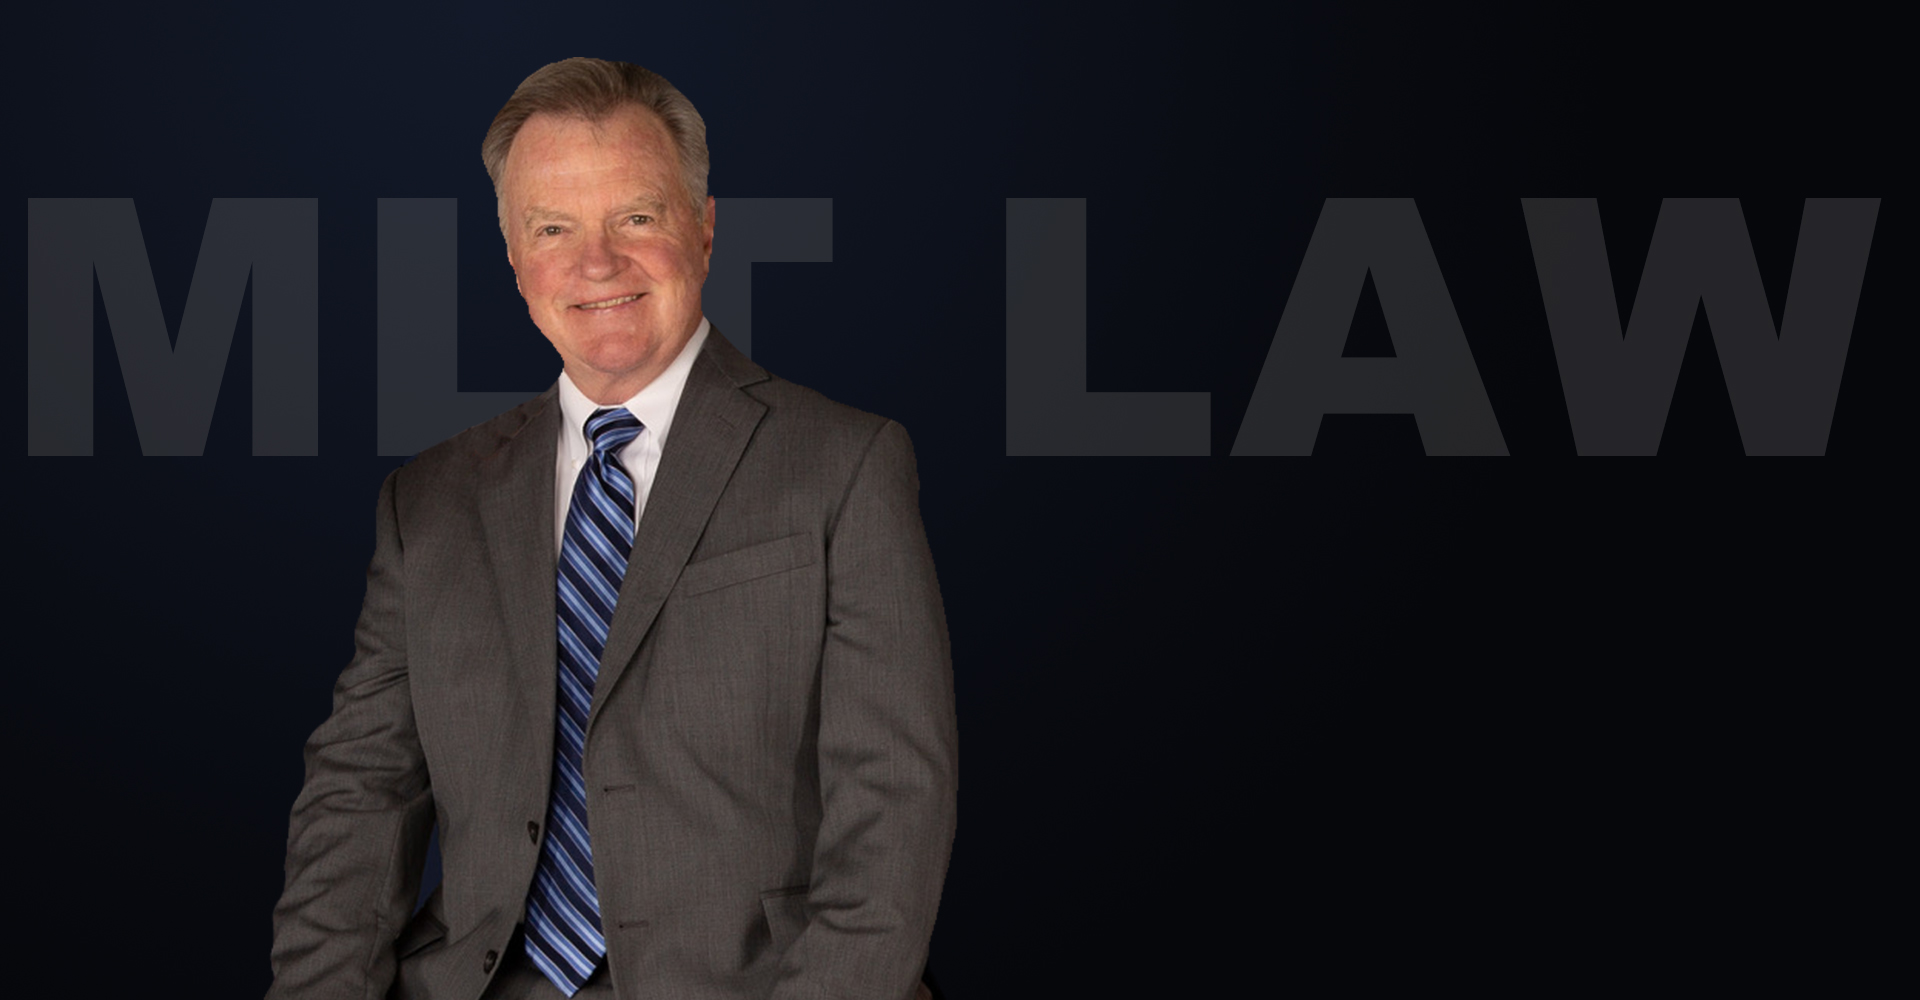 Attorney Chuck Taylor of McDonald, Levy & Taylor Law Firm